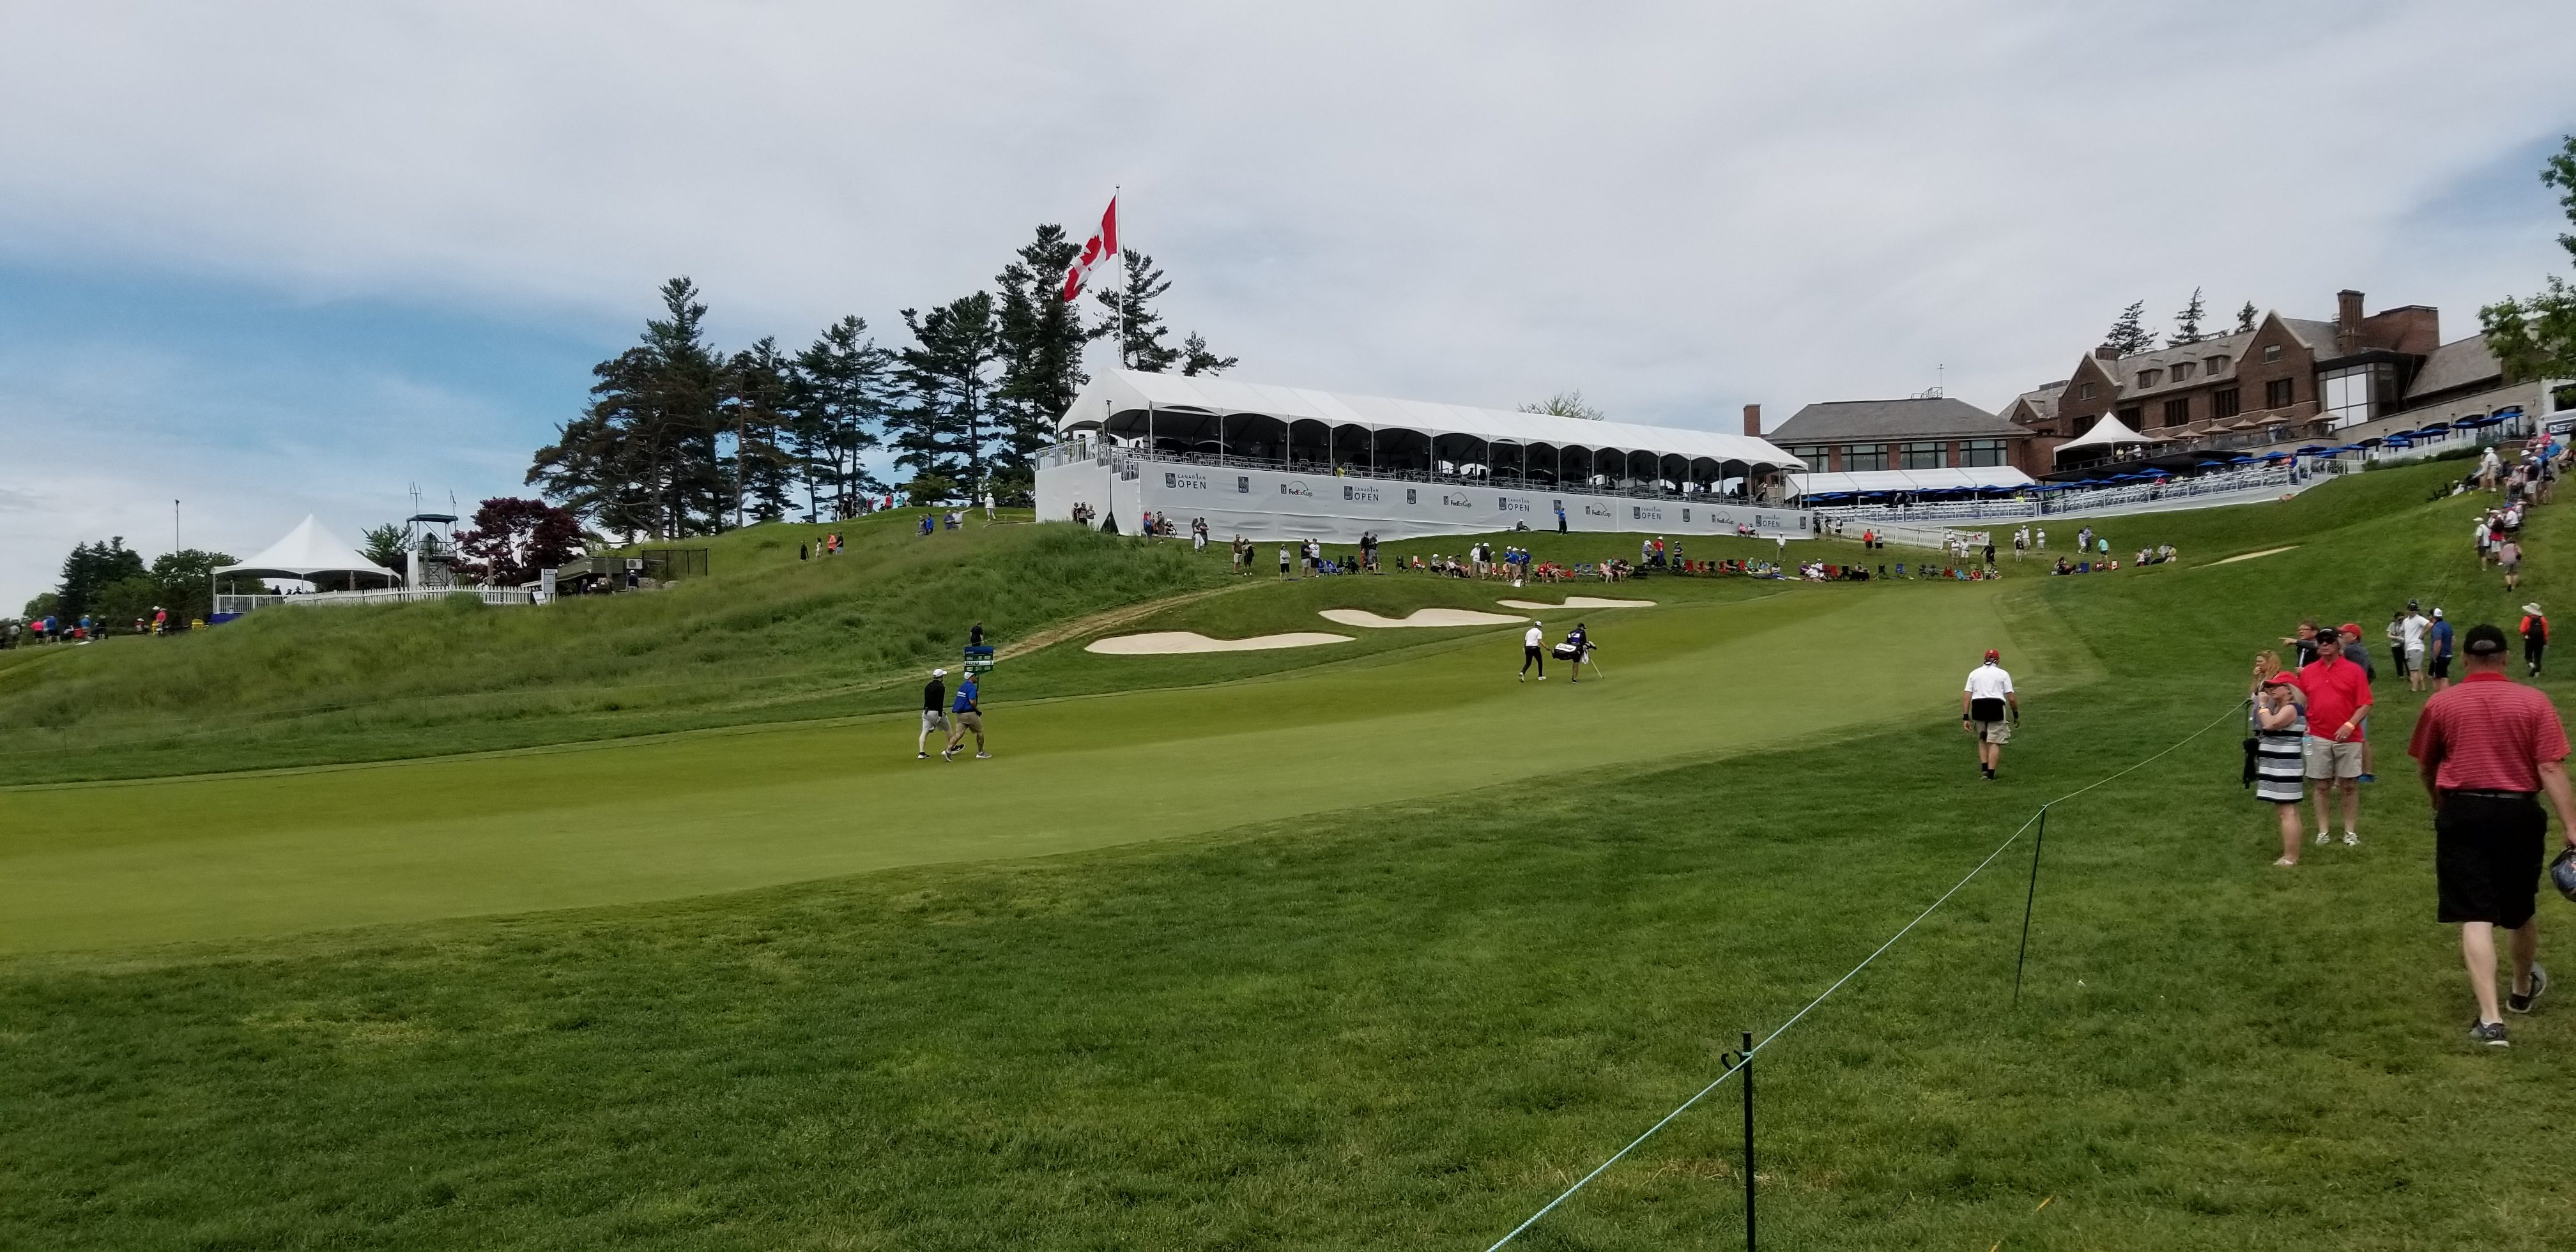 A View of the RBC Canadian Open